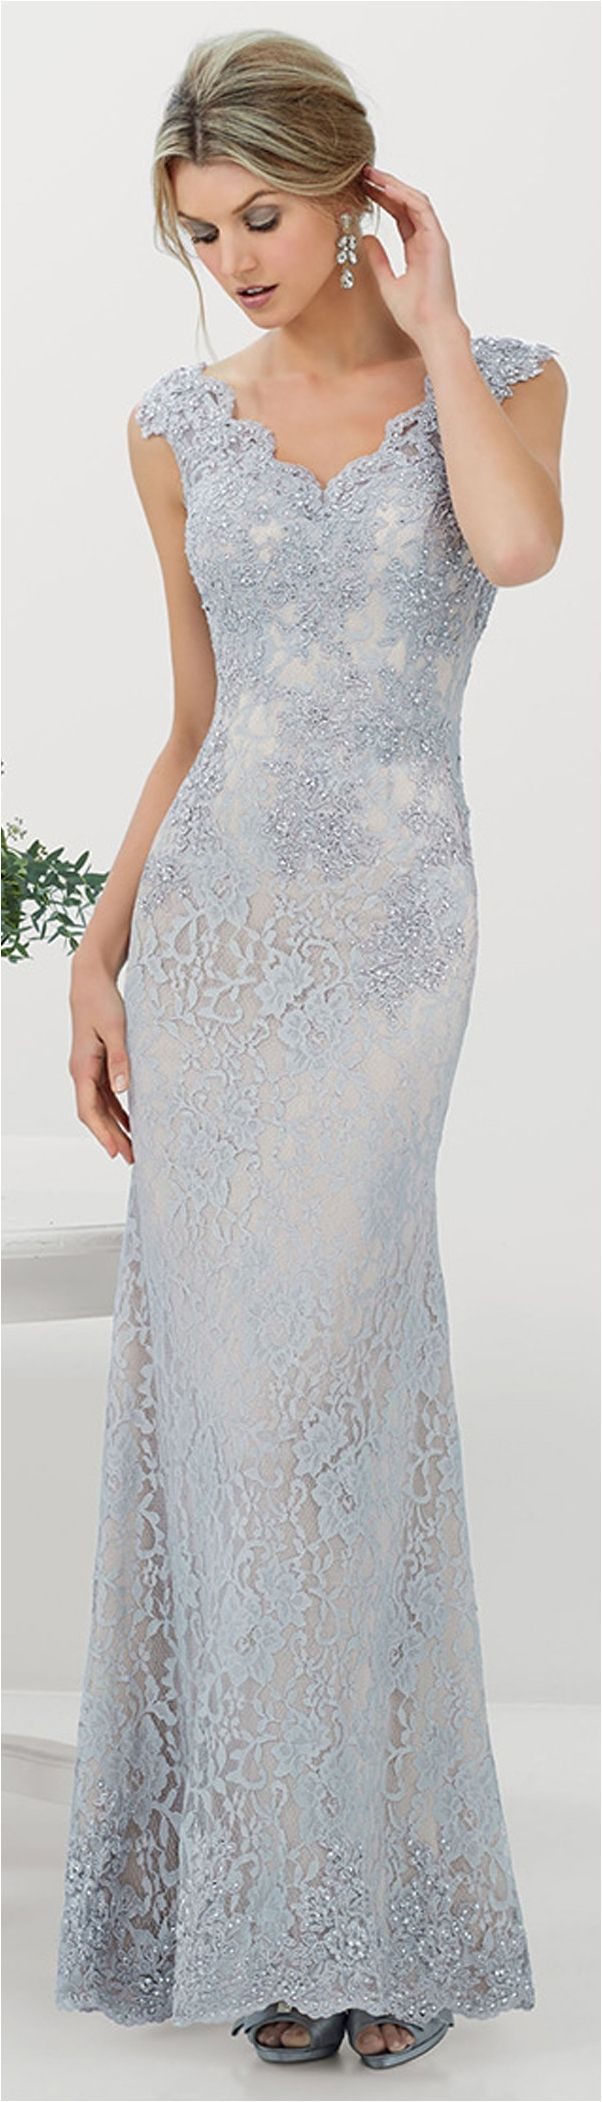 Elegant Mother Of The Bride Dresses Trends Inspiration Ideas